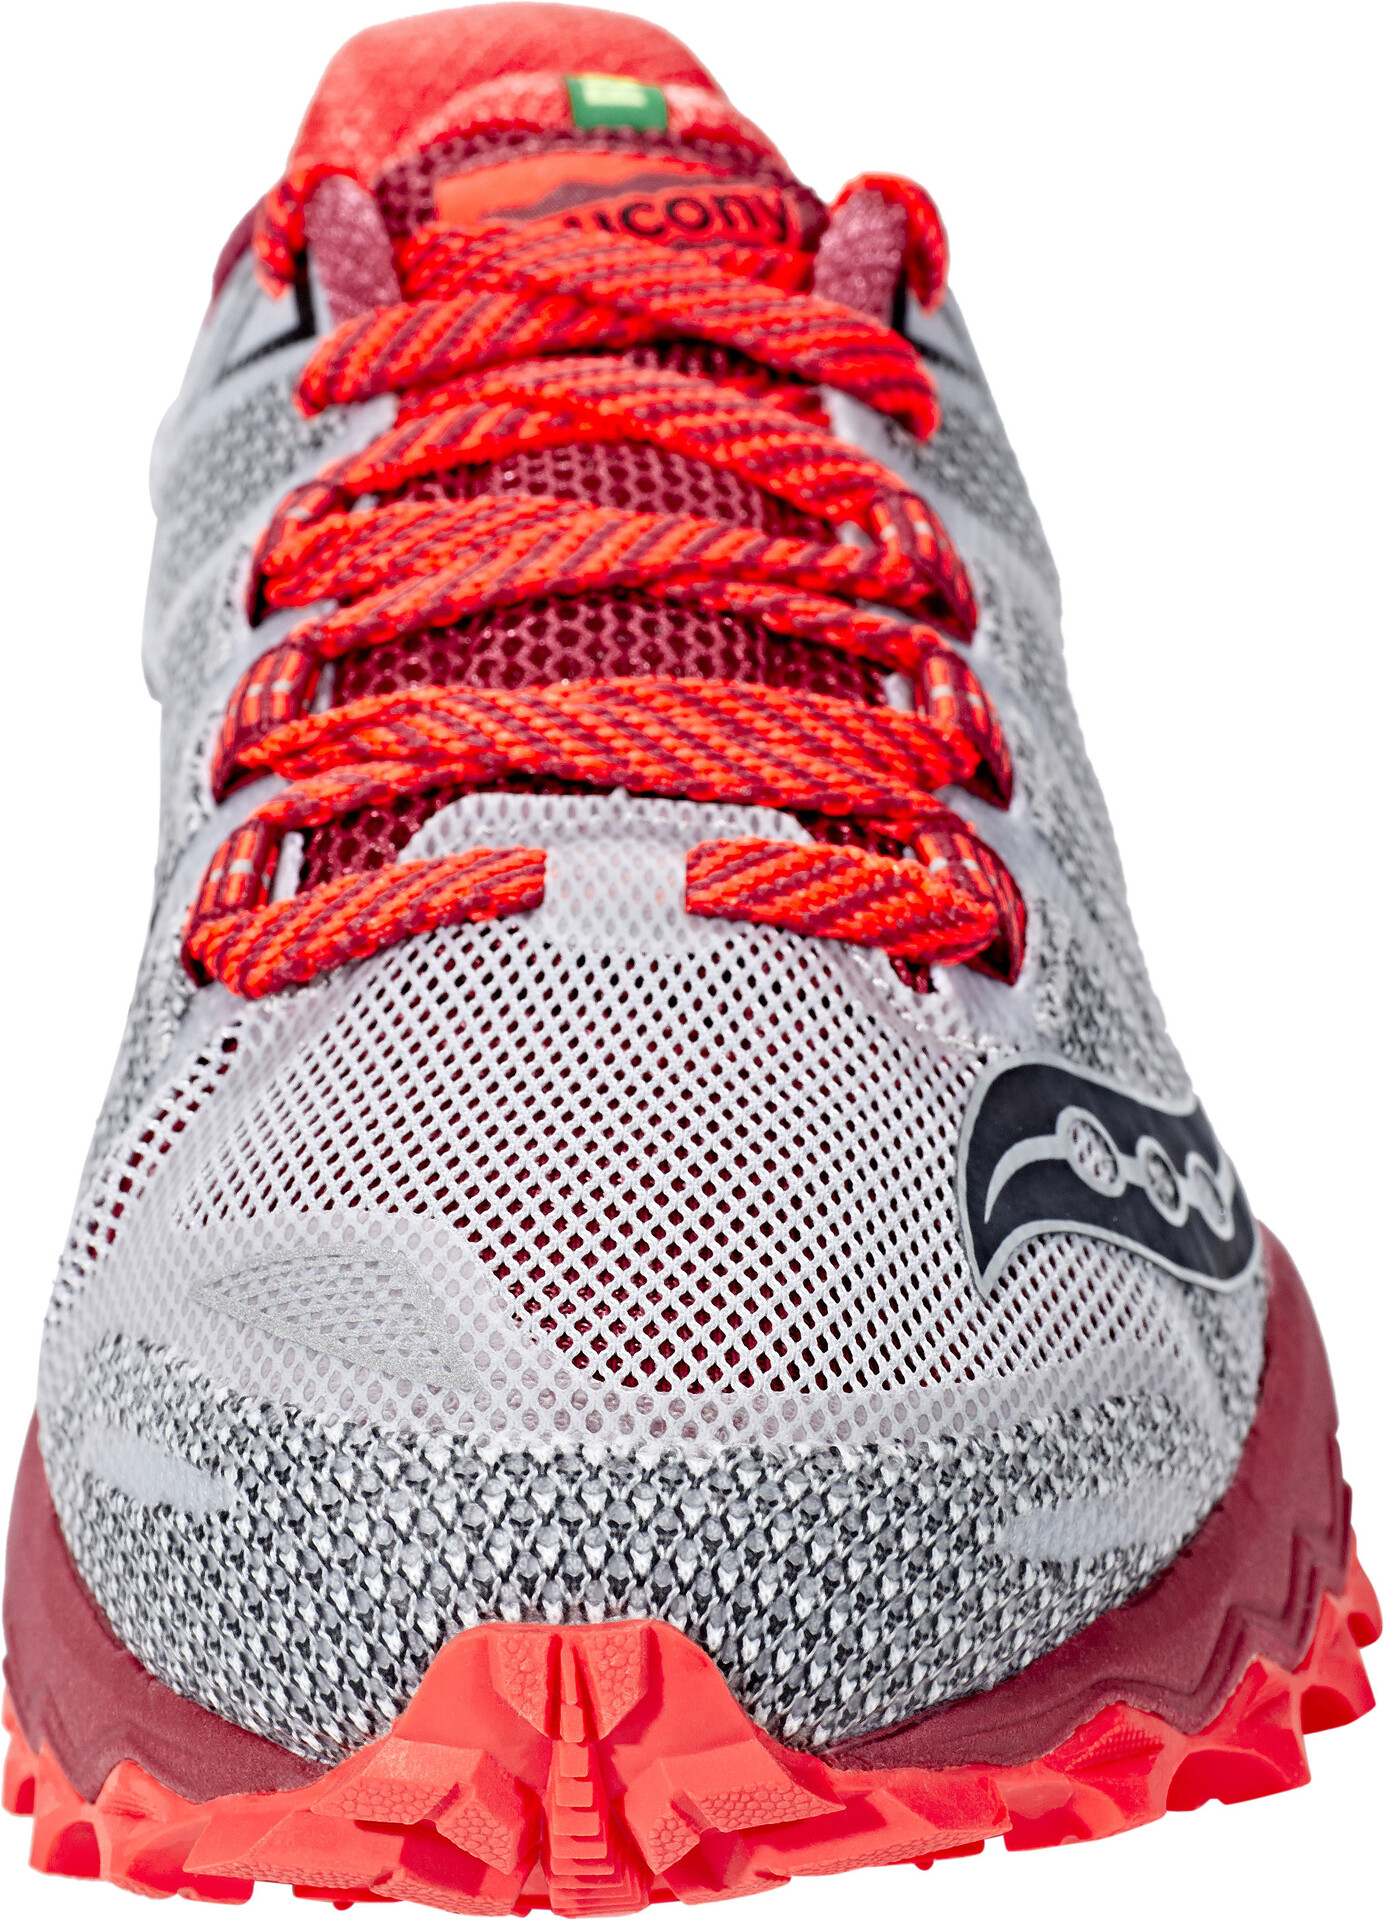 Femme 7 Peregrine Running Chaussures Saucony Grisrouge Ib6vYfgym7